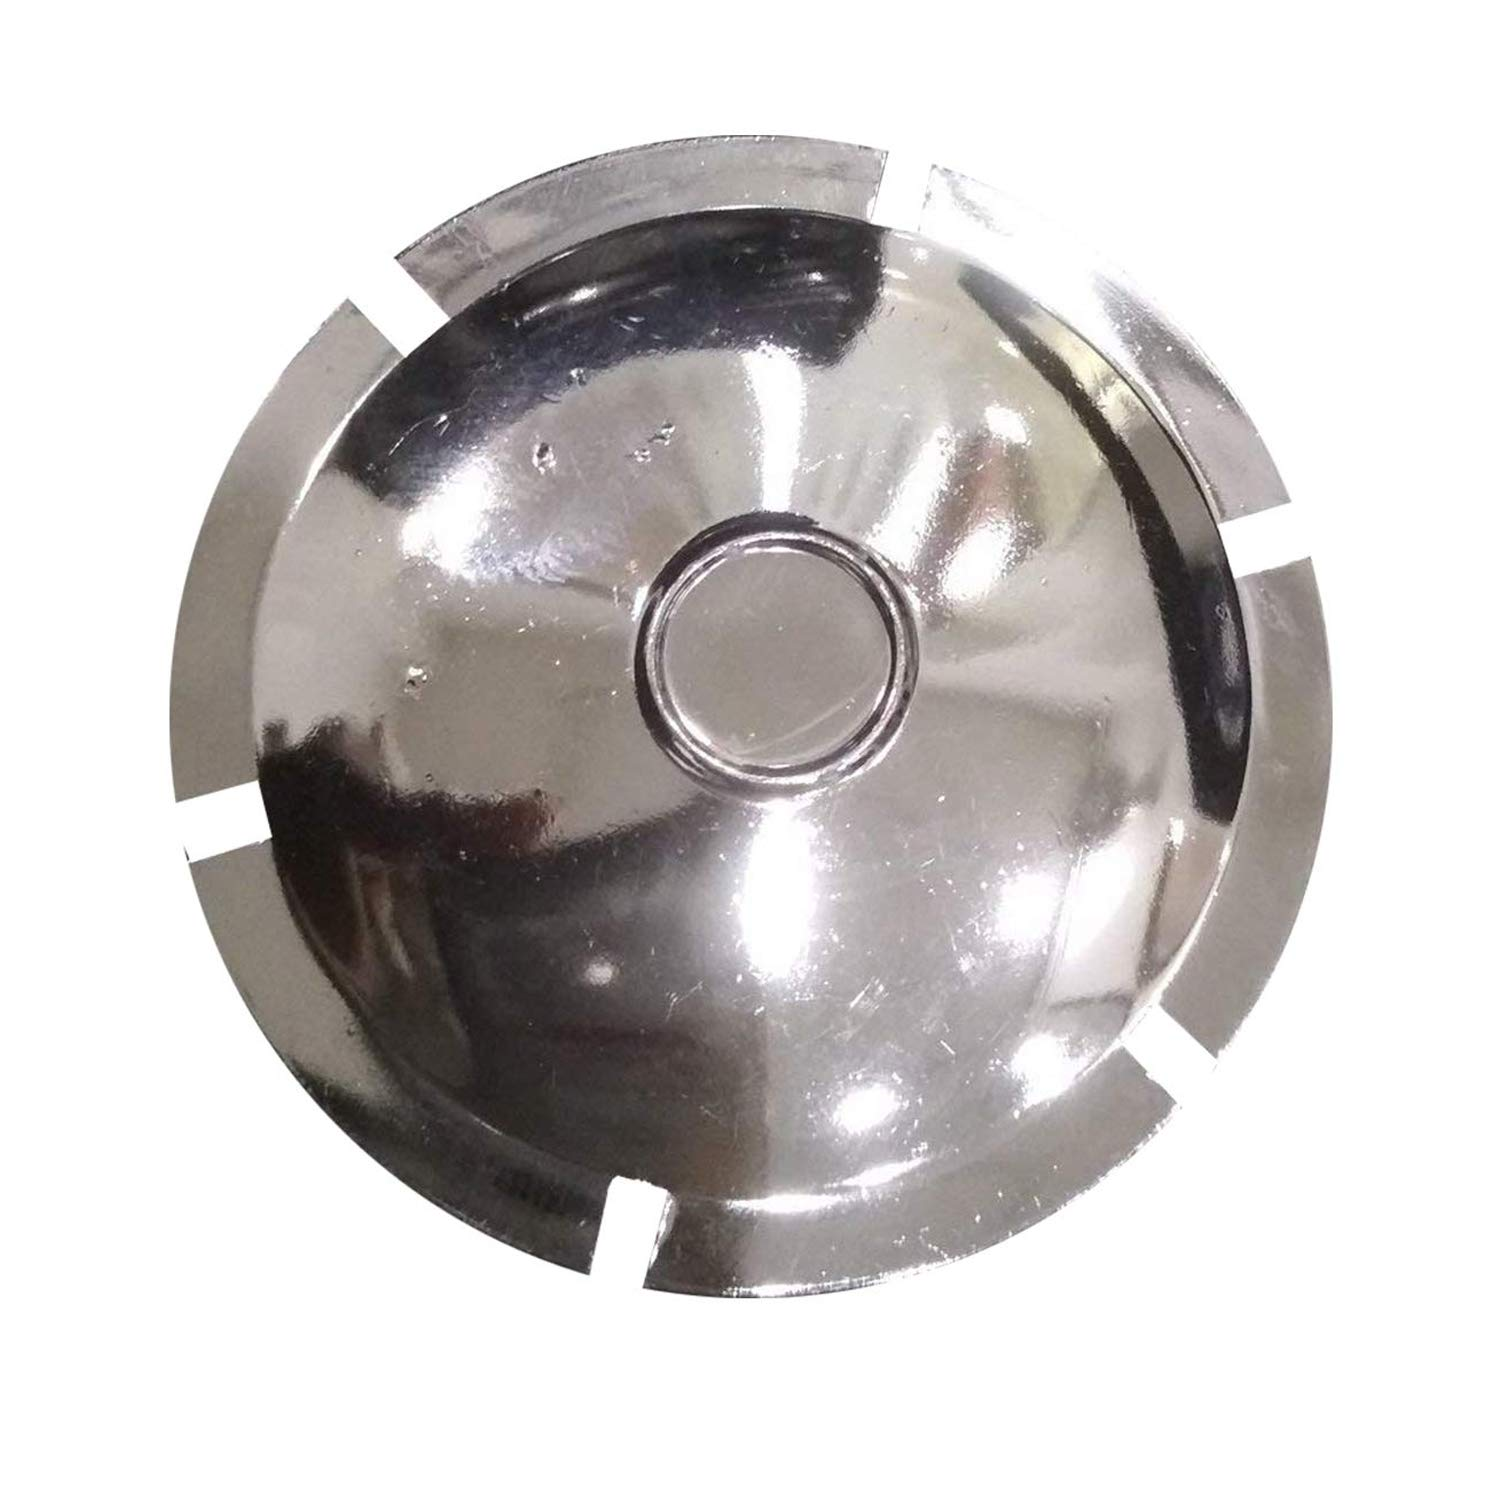 Dug Dug Rear Suspension Plastic Chrome Axle Cap for Royal Enfield Bullet Classic 350 Electra and Standard (2)